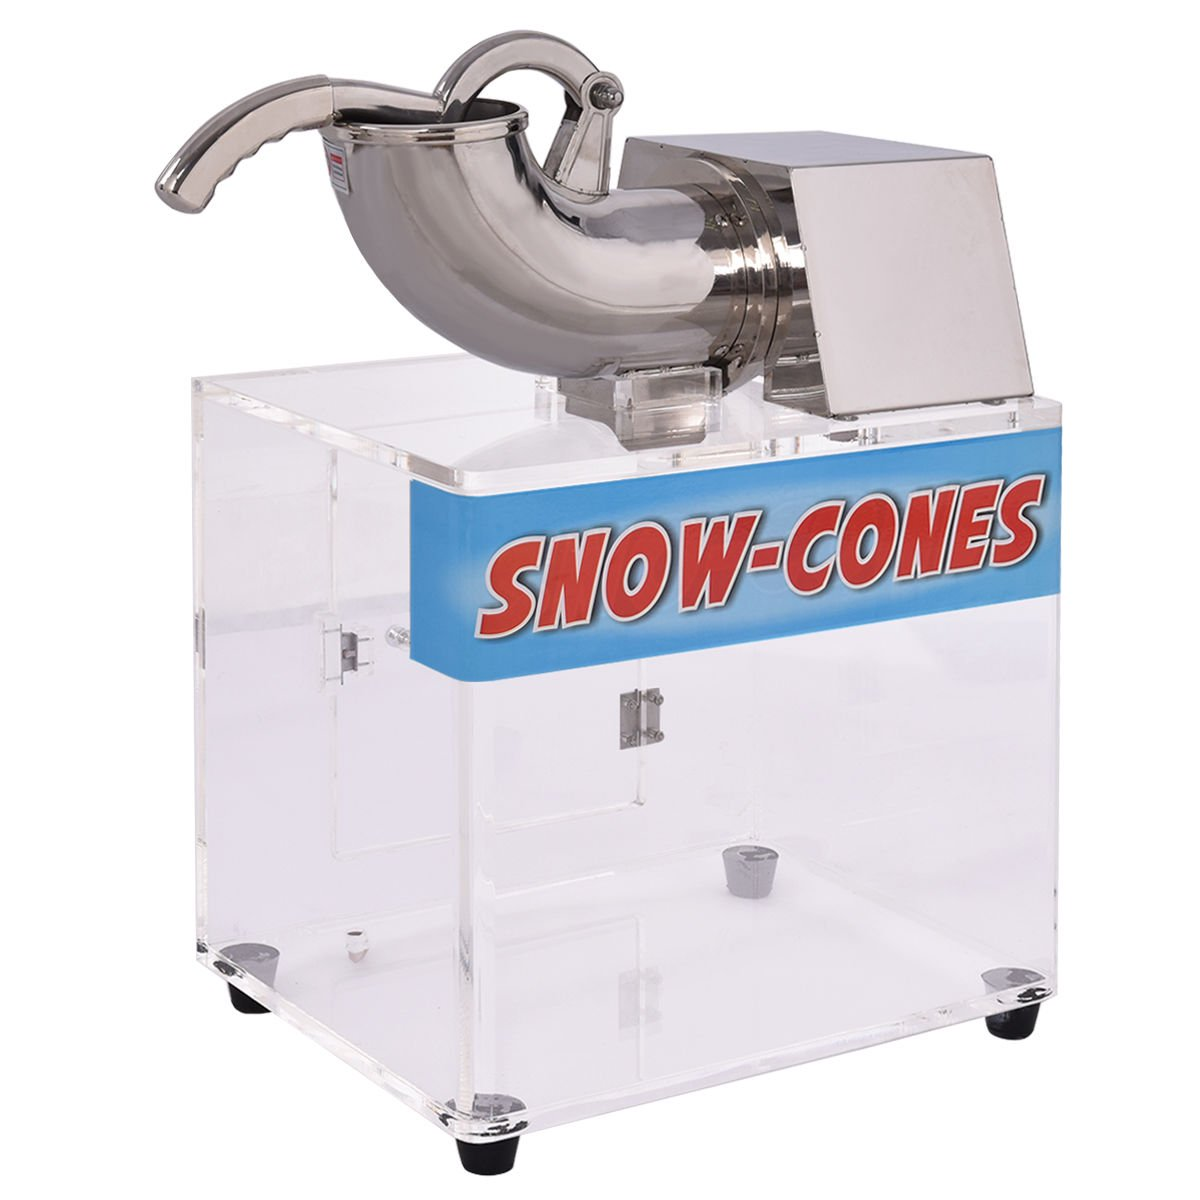 costway electric snow cone machine ice shaver maker shaving crusher dual blades - Commercial Snow Cone Machine